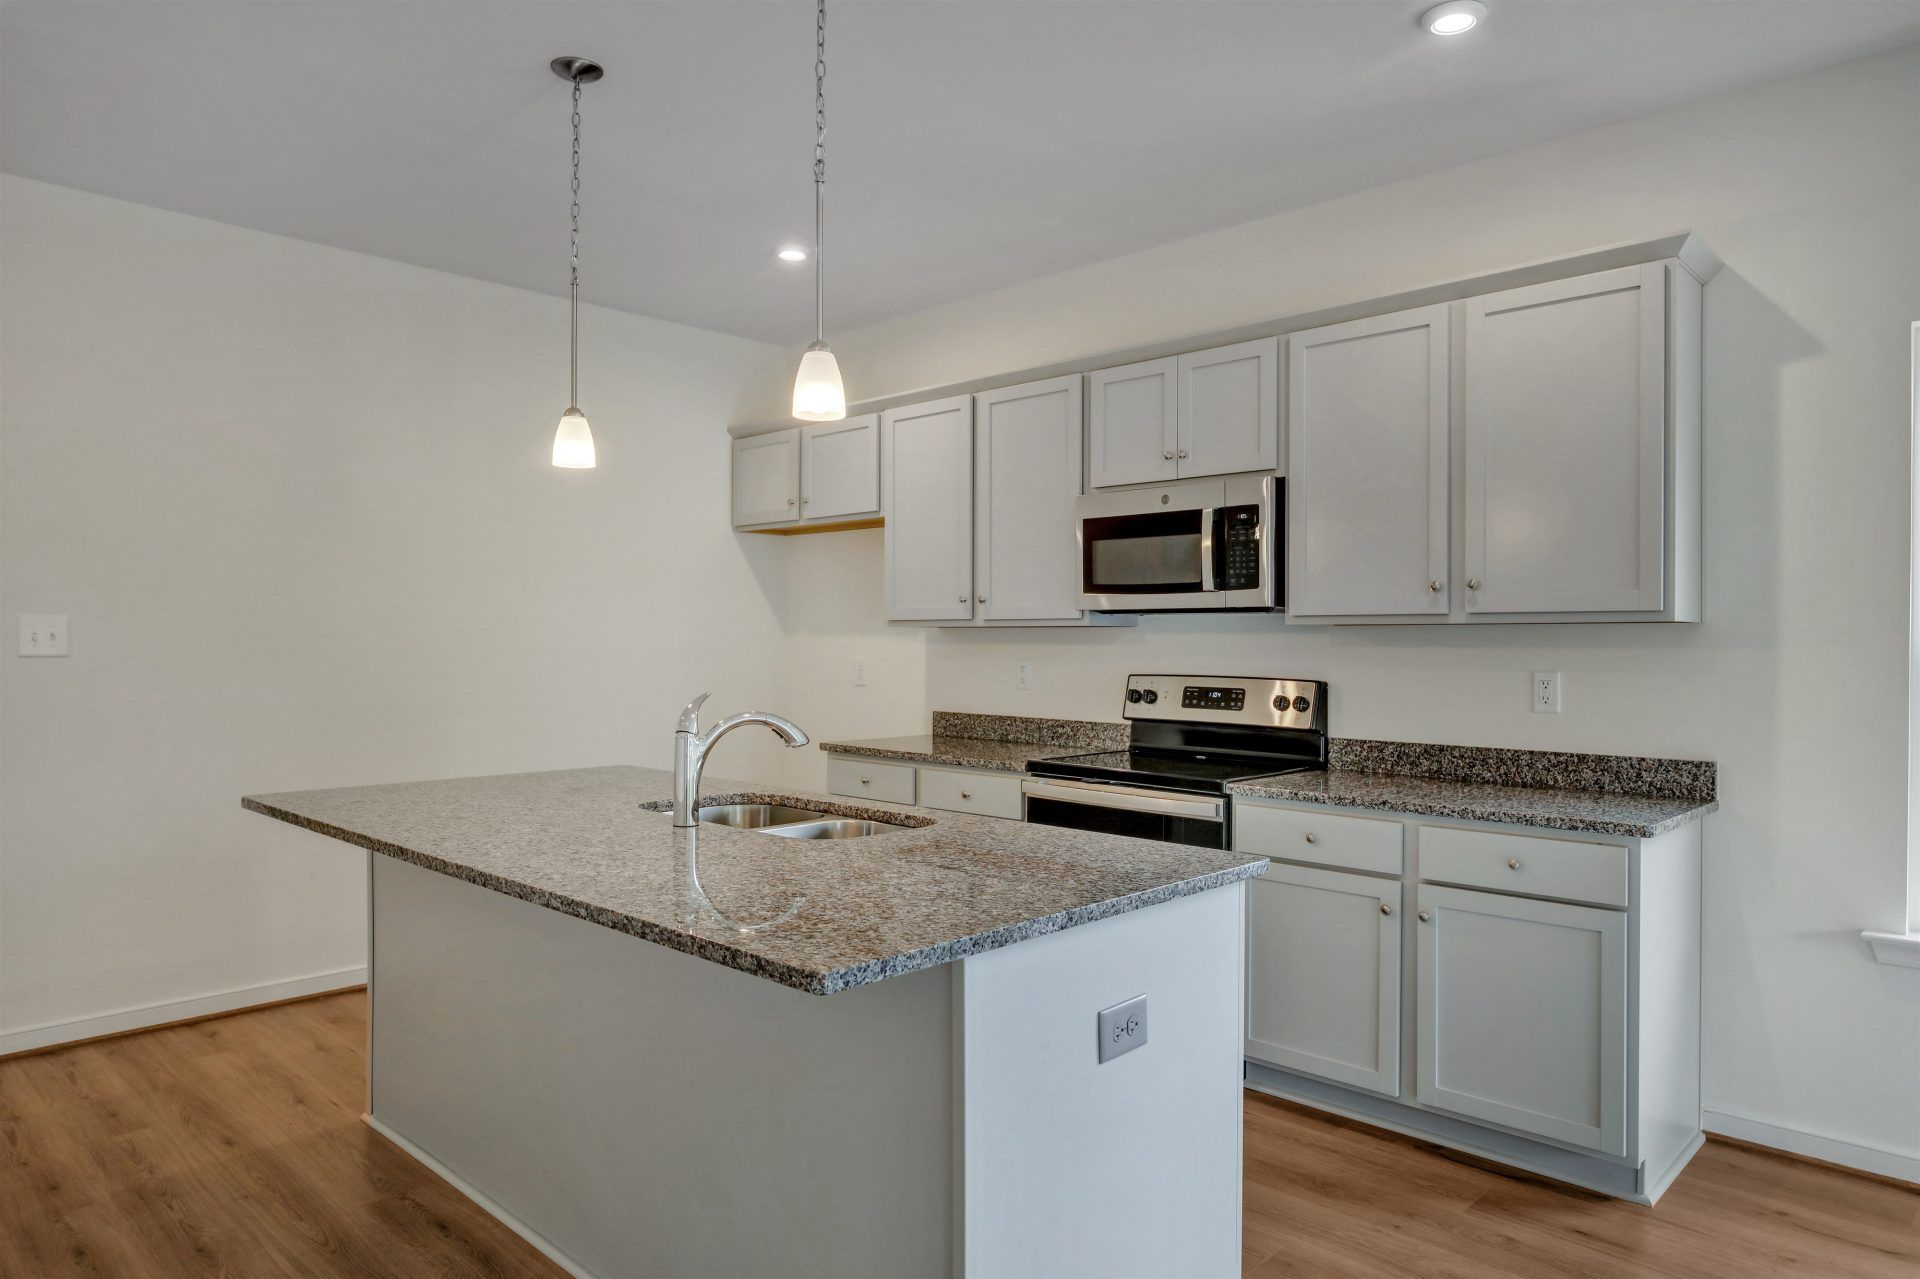 Kitchen featured in the Harlow By HHHunt Homes LLC in Richmond-Petersburg, VA